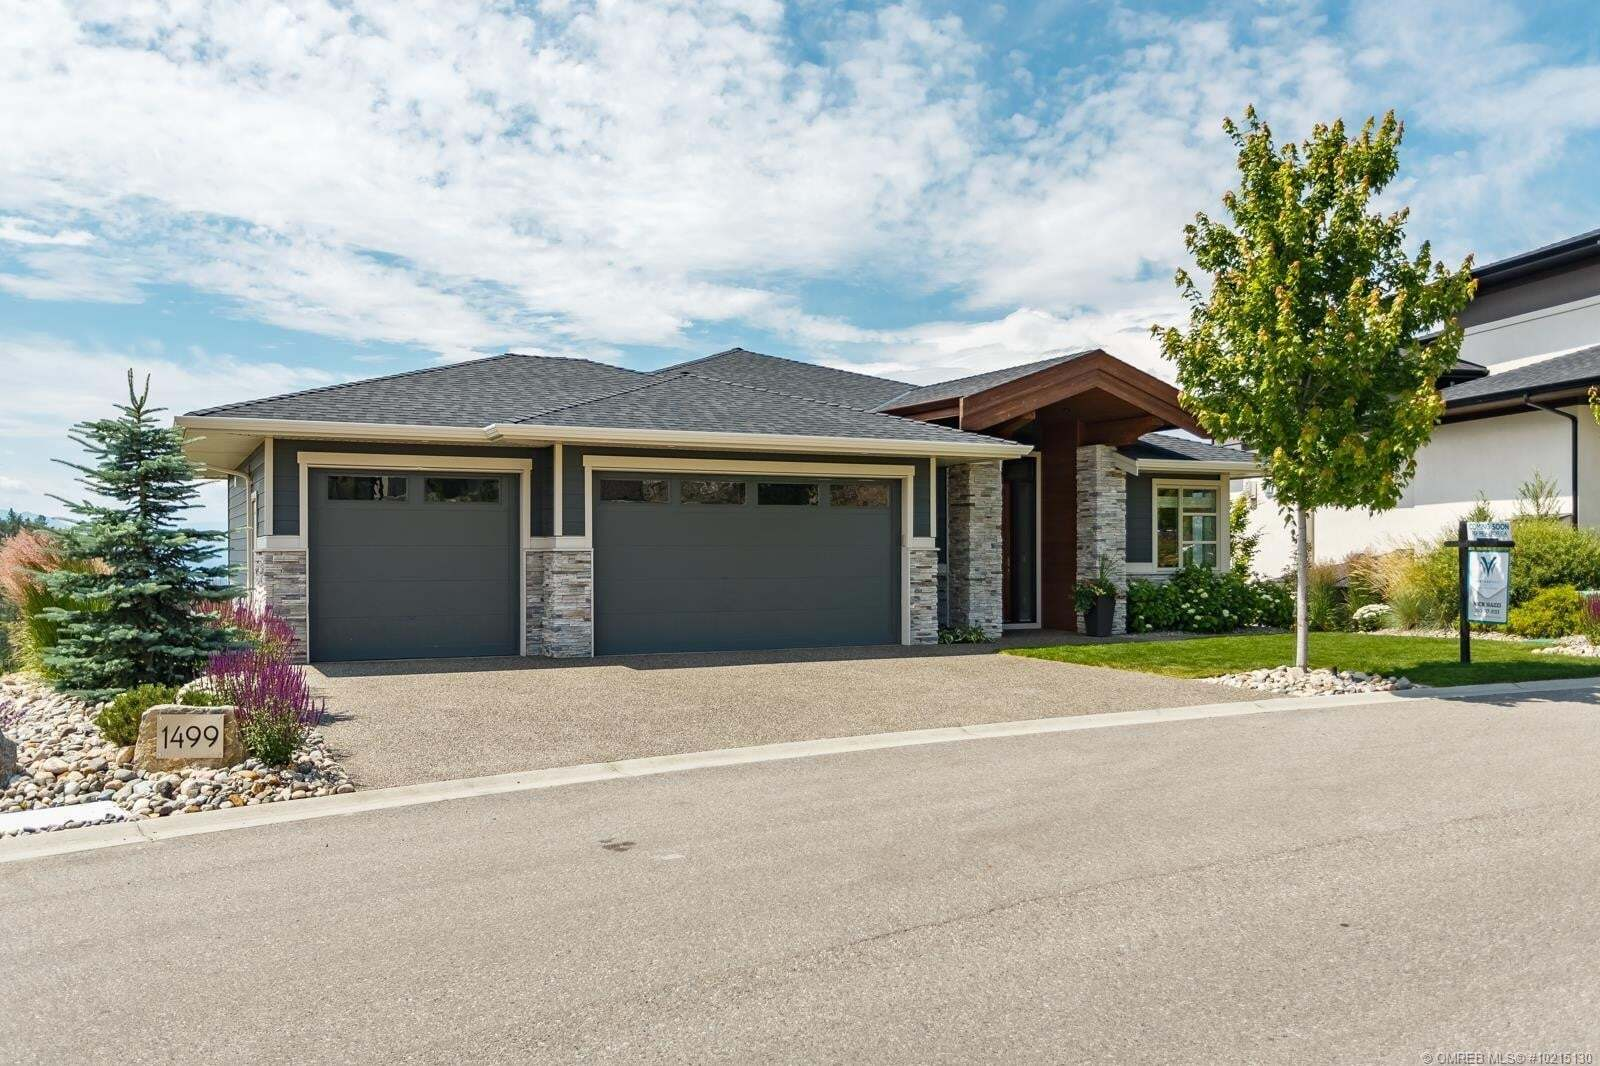 House for sale at 1499 Rocky Point Dr Kelowna British Columbia - MLS: 10215130